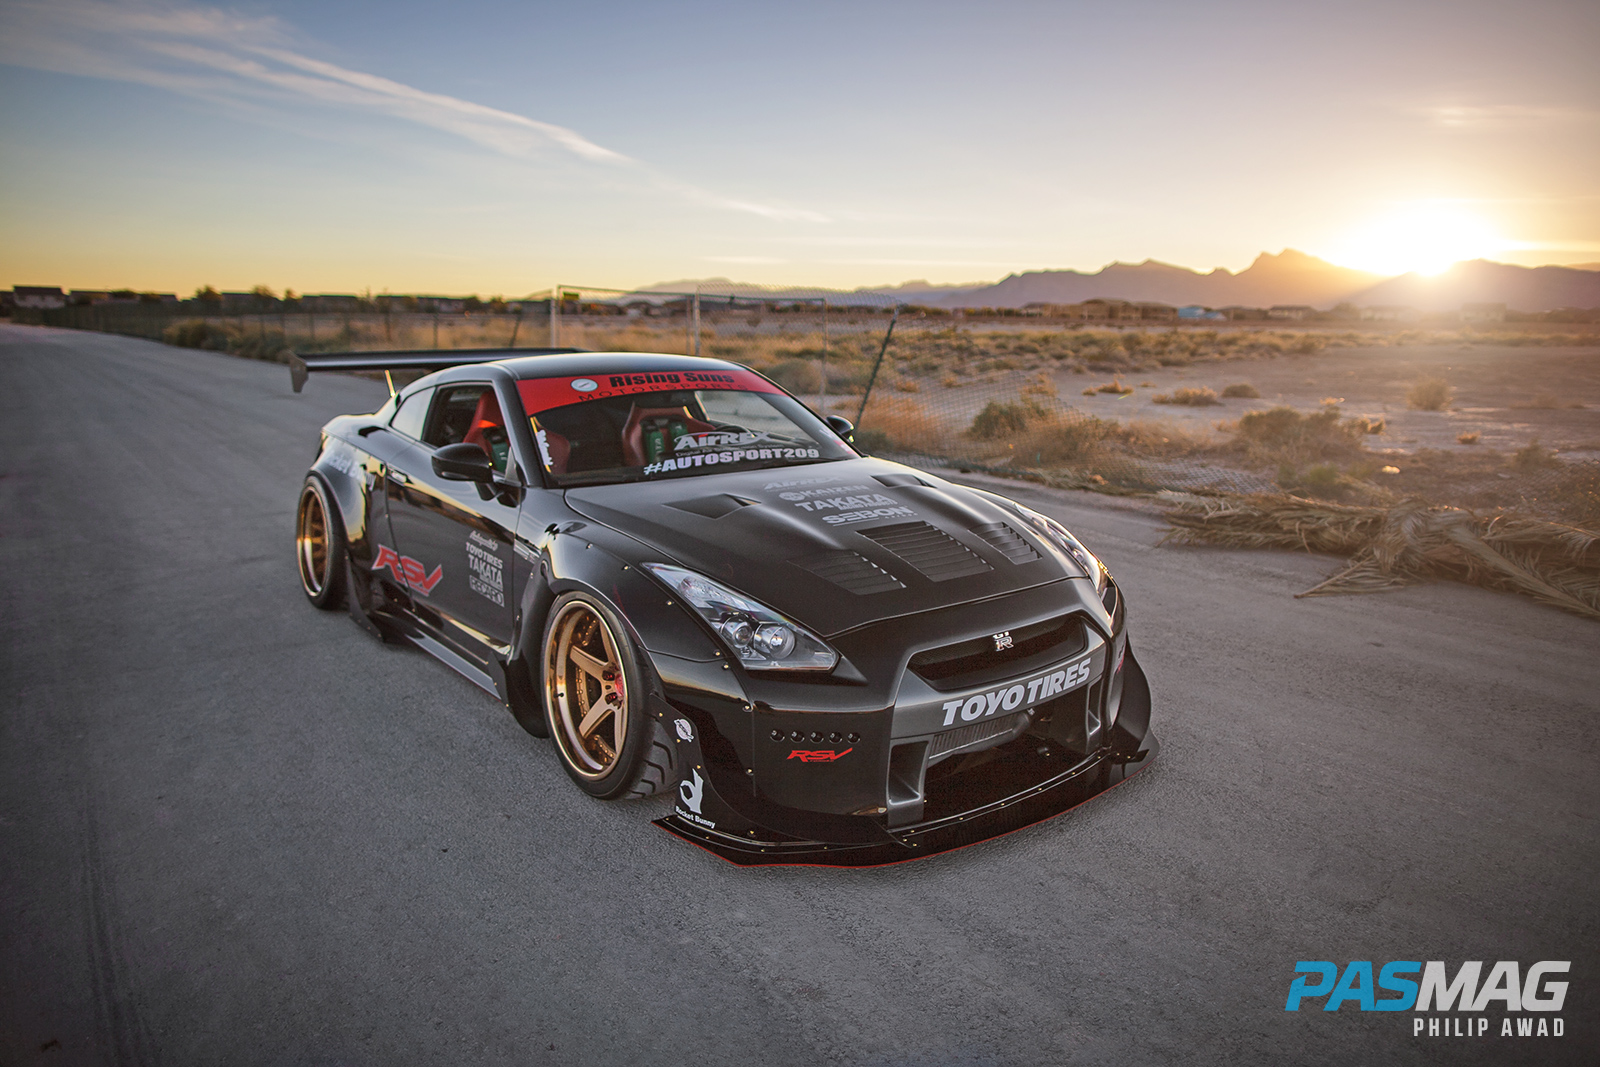 R0thsen gtr widebody nissan gtr mppsociety for Nissan gtr bodykit